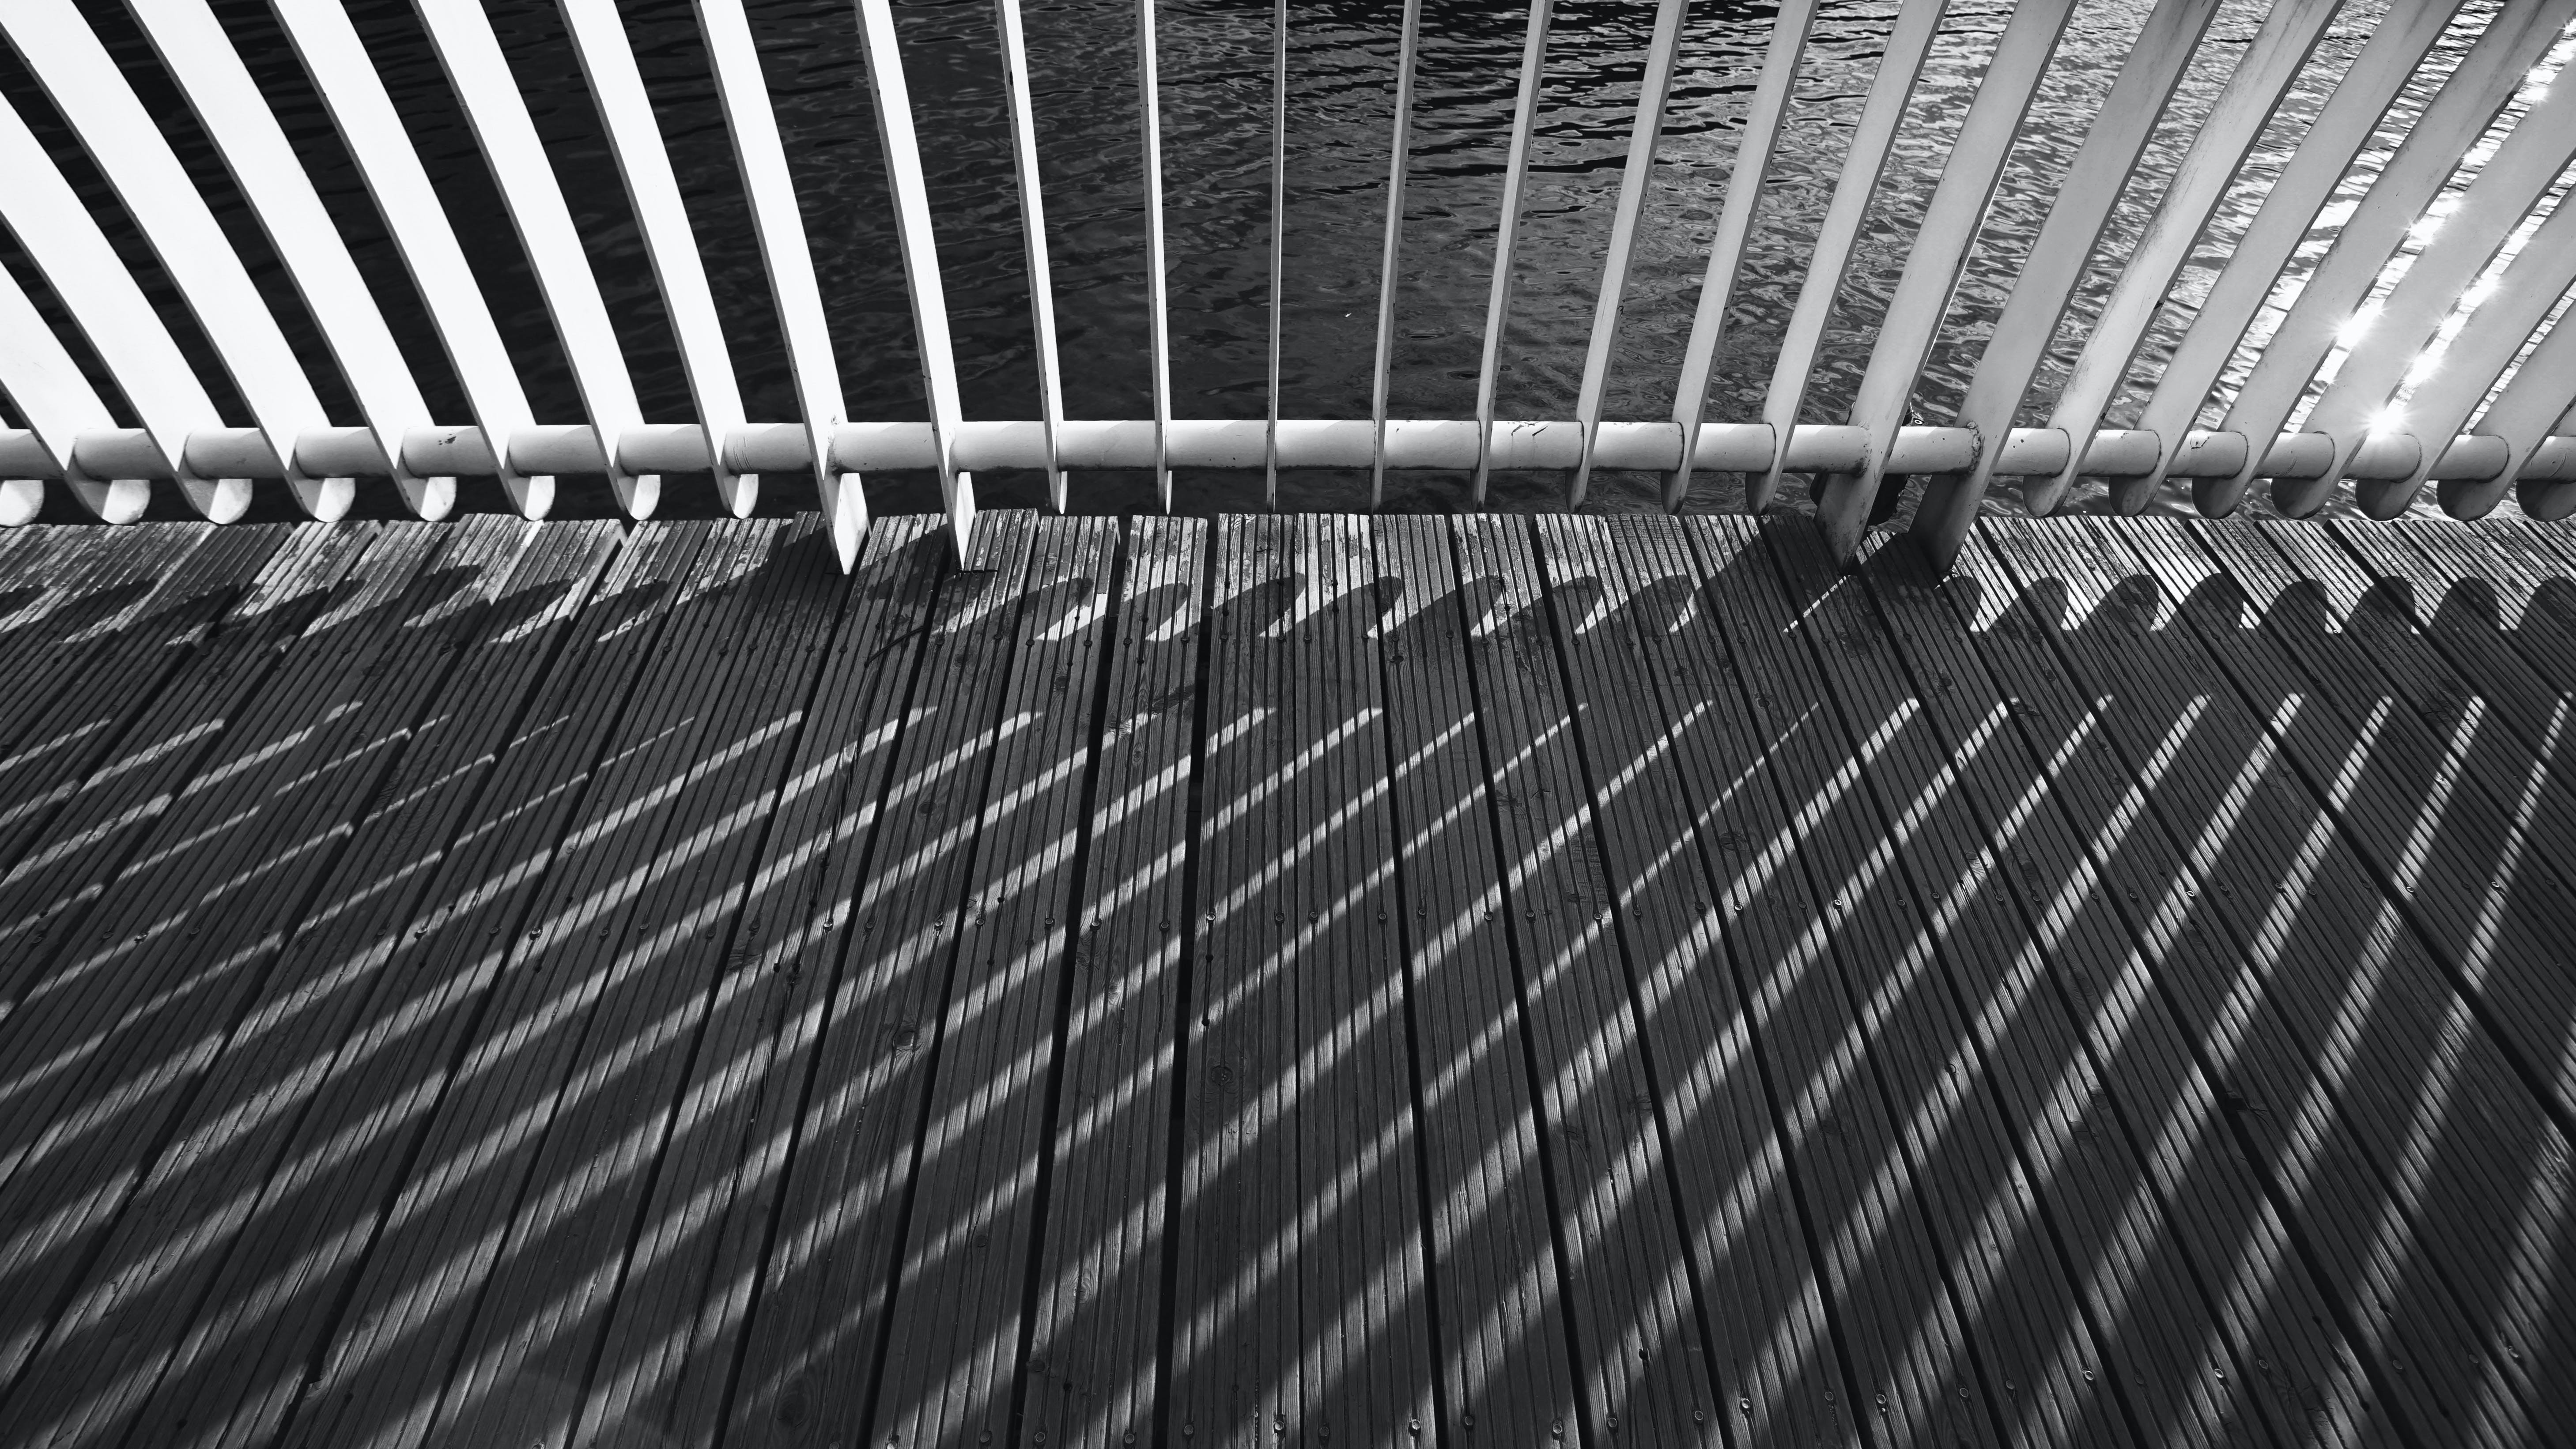 Grayscale Photo of Shadow of Metal Railing